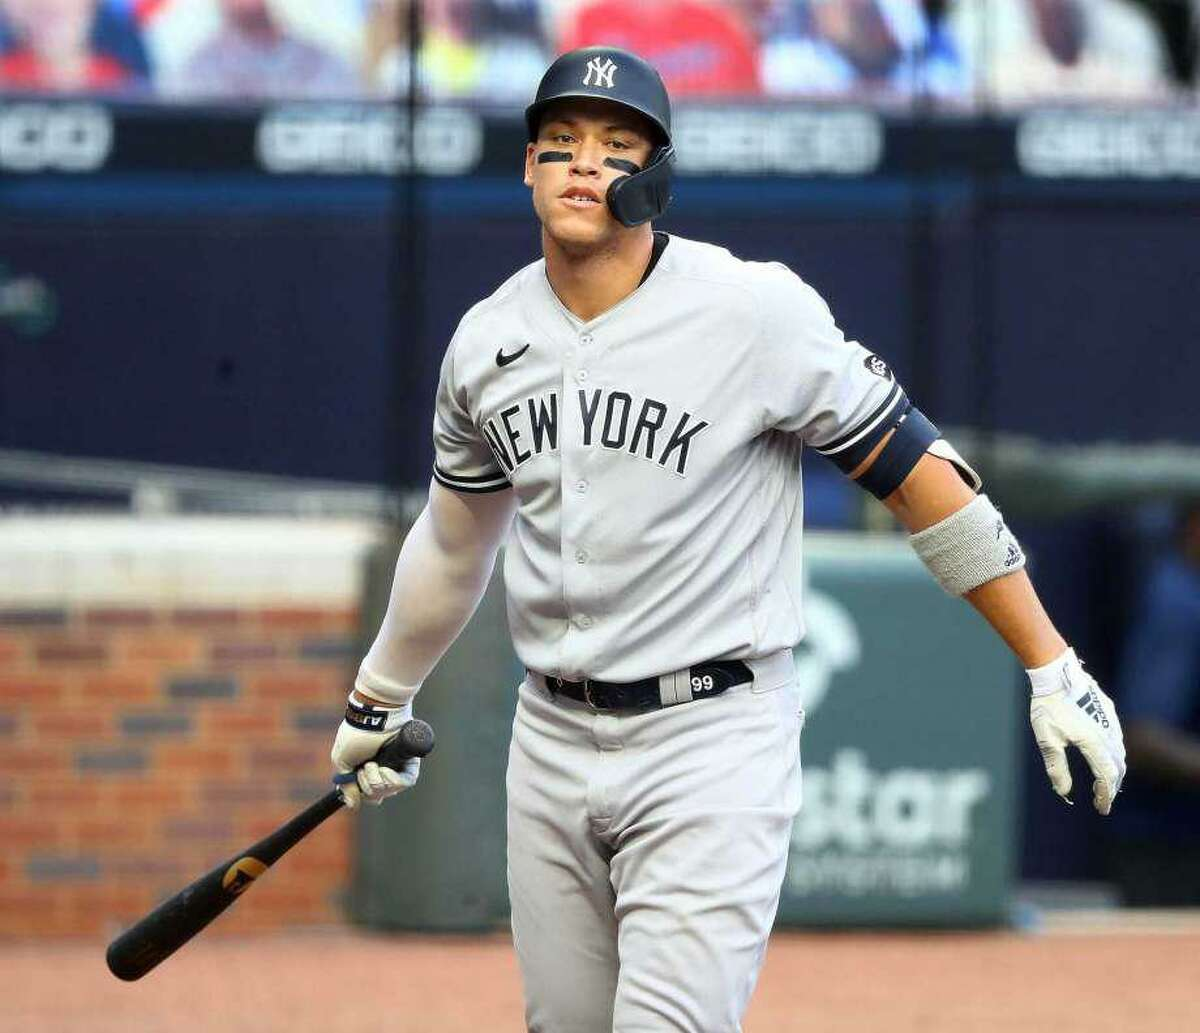 The New York Yankees' Aaron Judge grounds out against the Atlanta Braves during the first inning in the second game of a doubleheader on Wednesday, Aug. 26, 2020, at Truist Park in Atlanta.